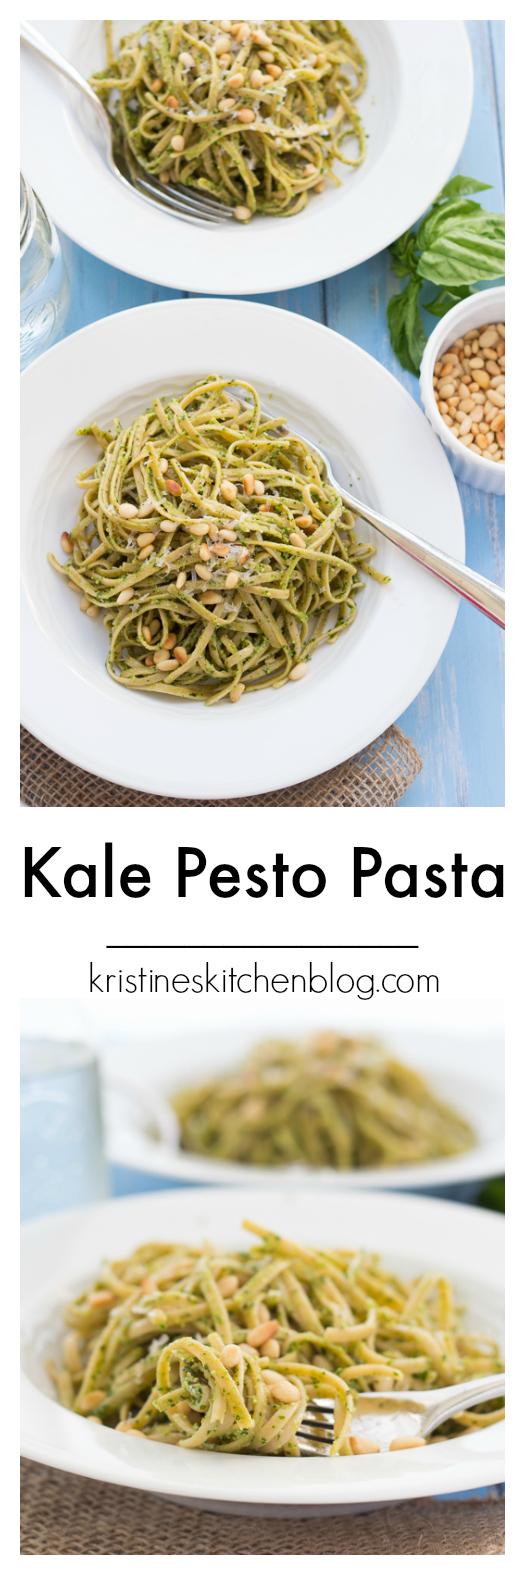 collage image for pinterest of kale pesto pasta